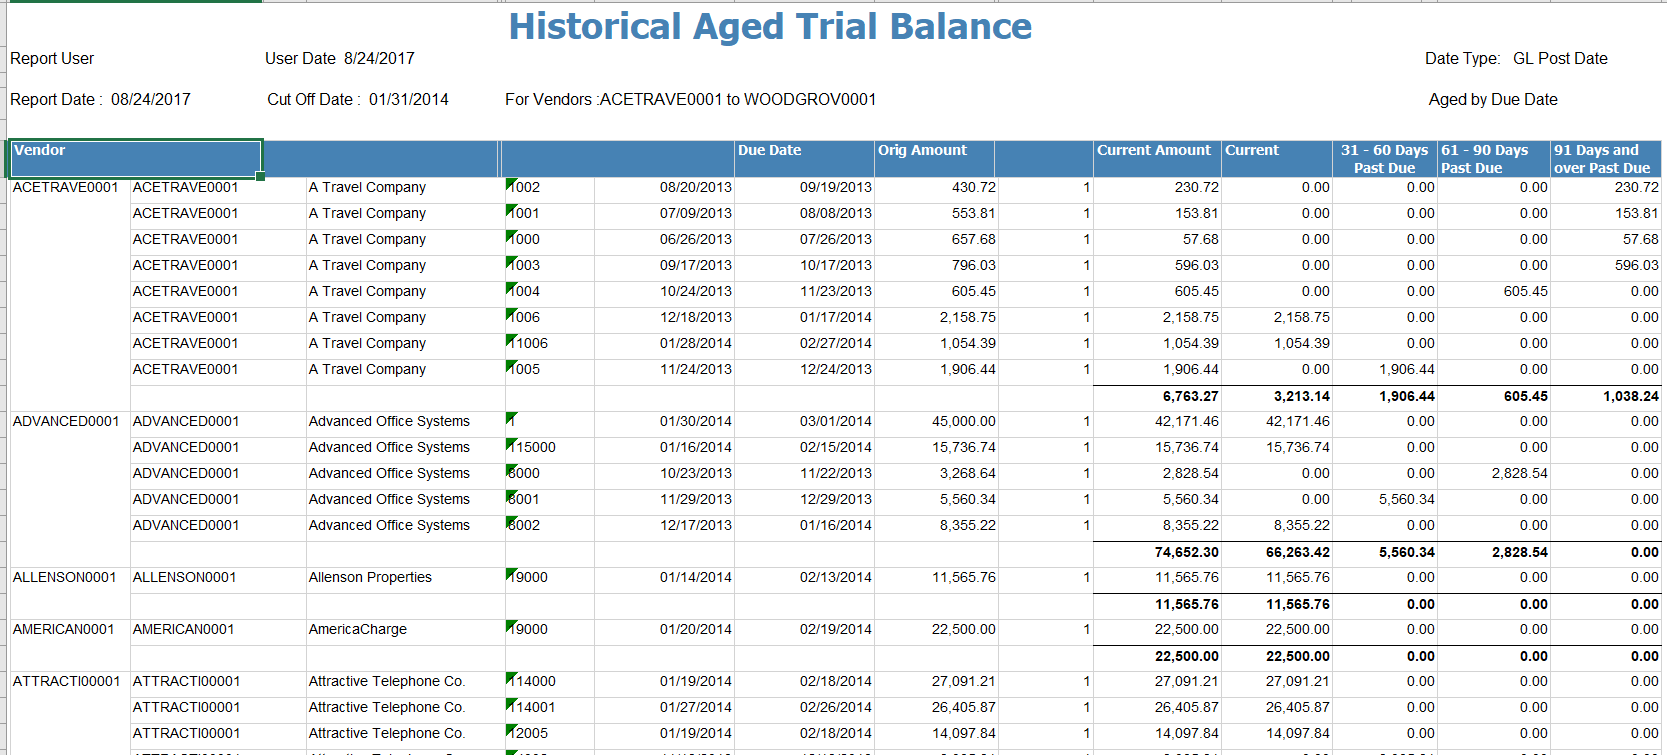 Figure 1 - Historical Aged Trial Balance